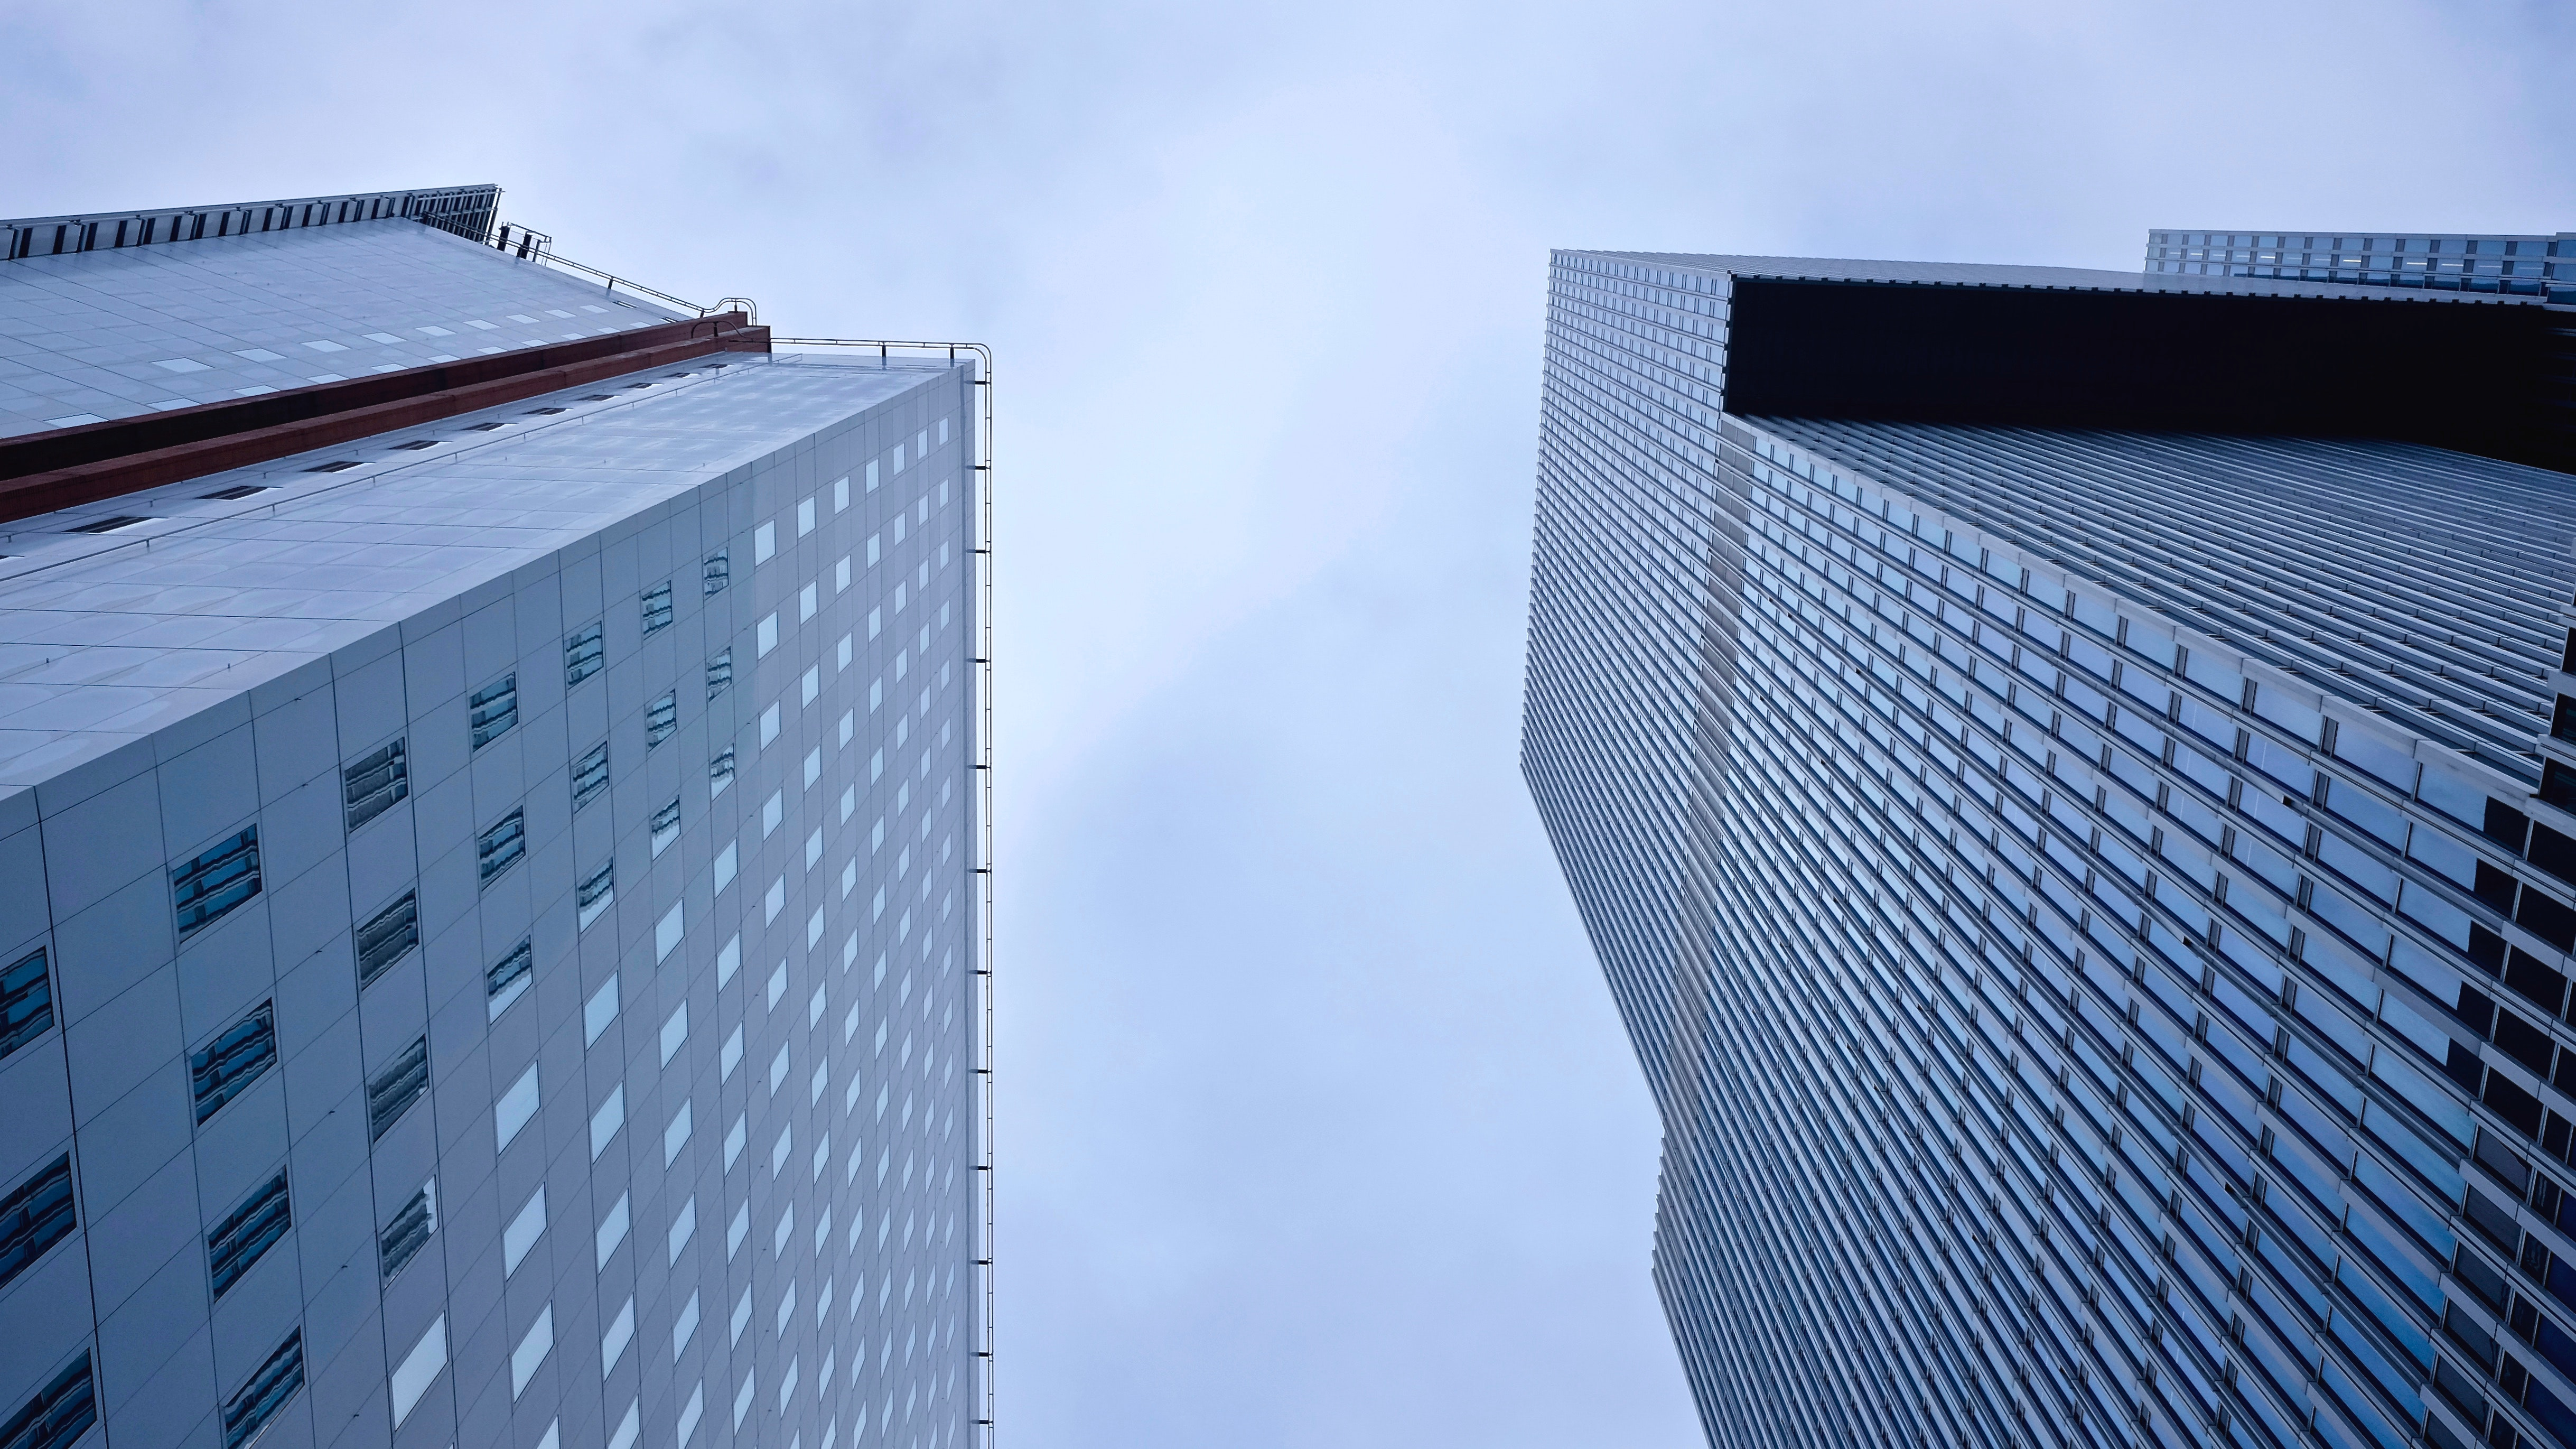 Low Angle Photography of Skyscrapers Against Sky, Architecture, Buildings, Cityscape, Glass, HQ Photo